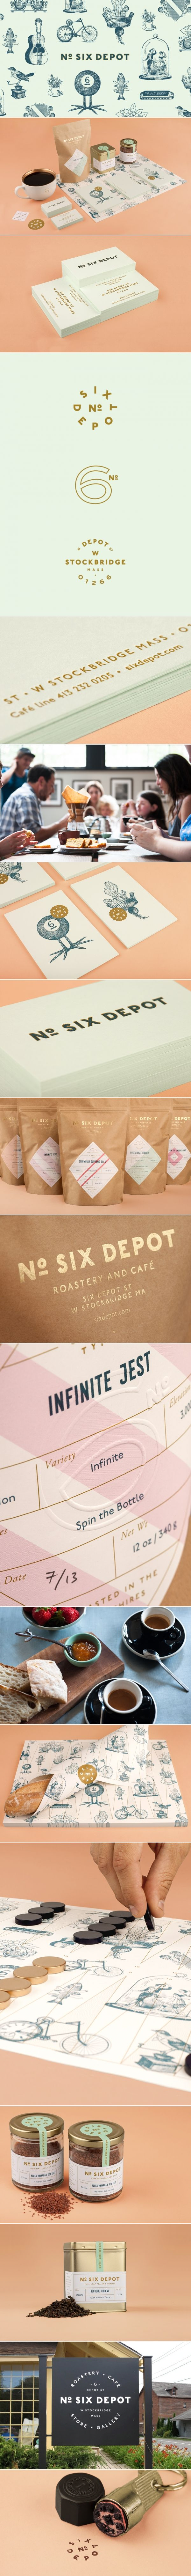 No. Six Depot Coffee Roaster & Cafe | Perky Bros.